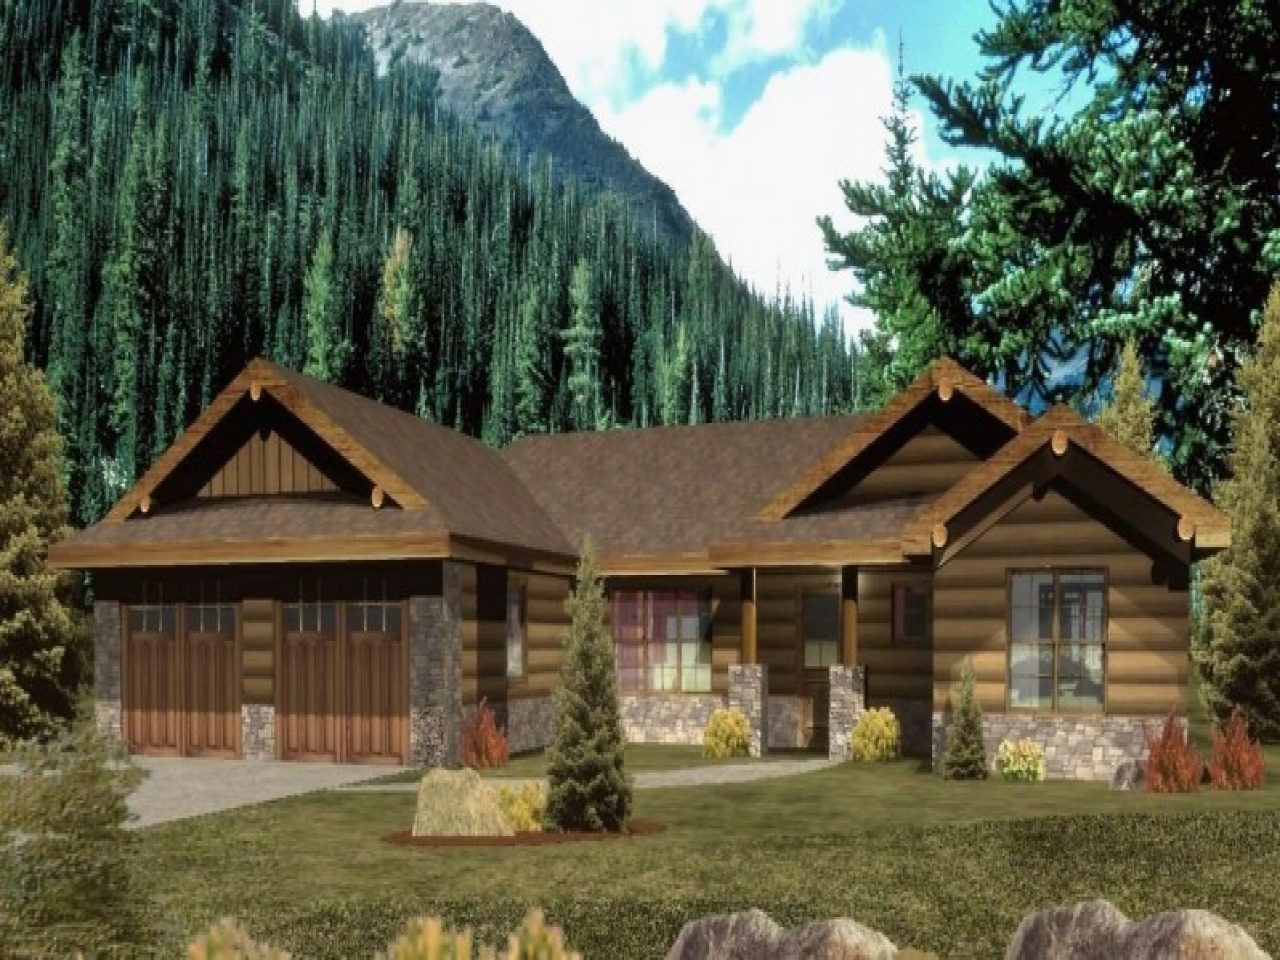 Texas ranch style log homes ranch style log home plans for Log home plans texas